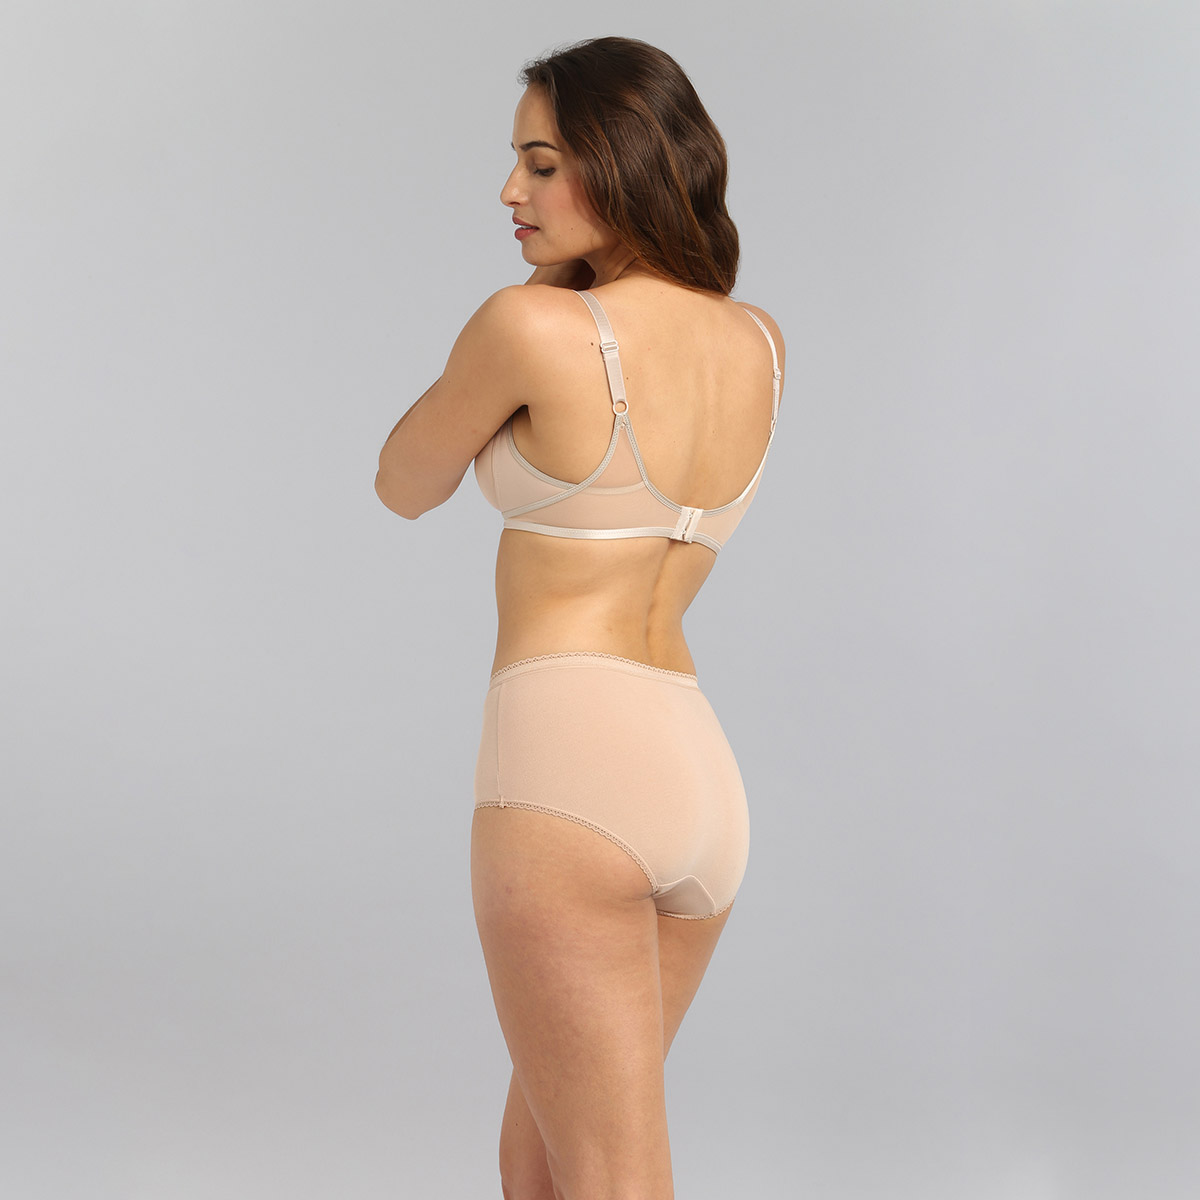 Soutien-gorge emboîtant sans armatures beige Ideal Beauty, , PLAYTEX